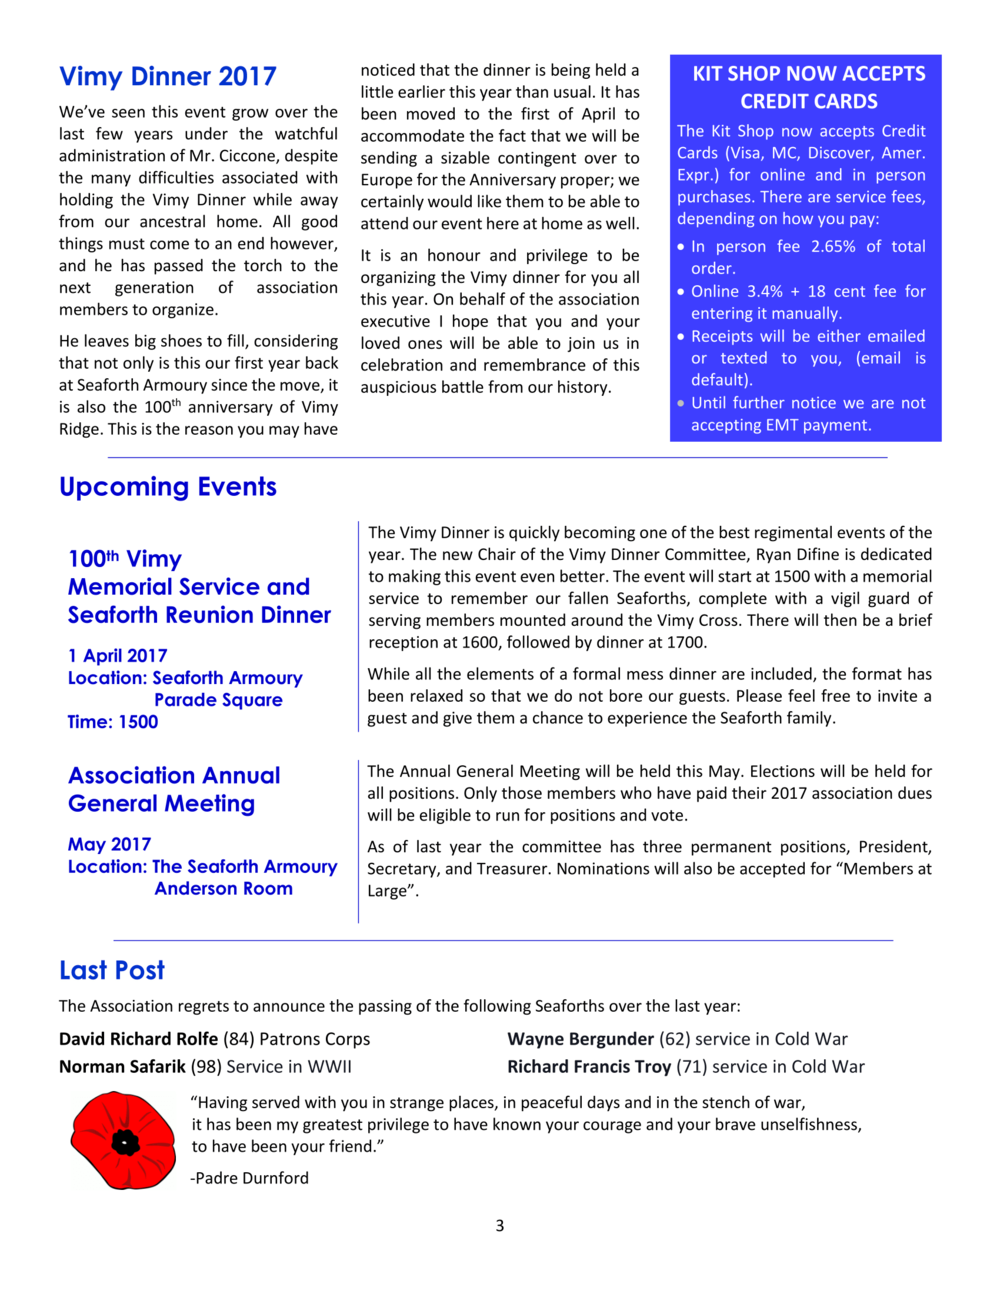 Association Newsletter January 2017-3.png